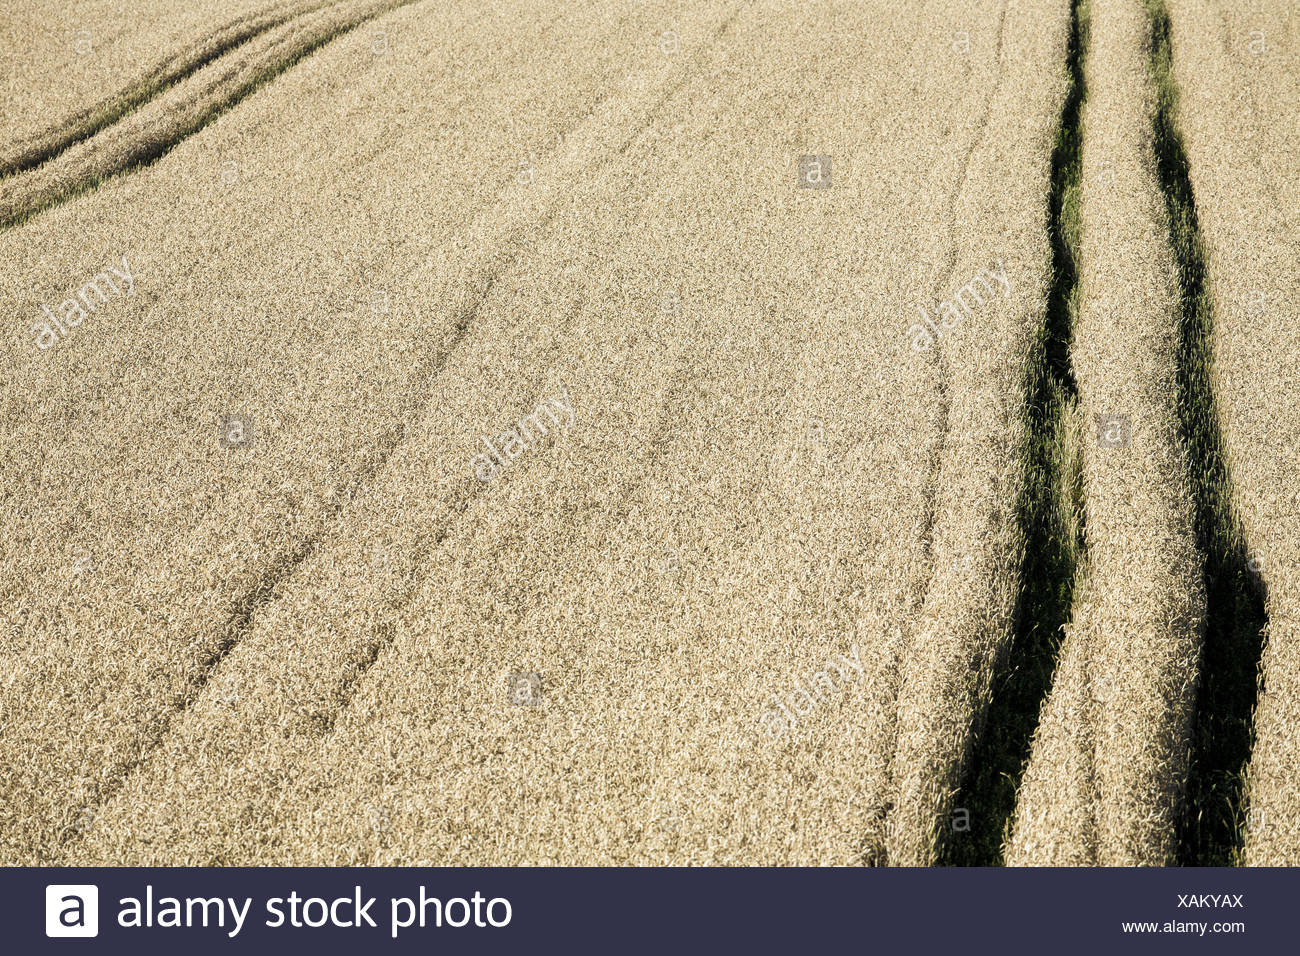 dry field - Stock Image